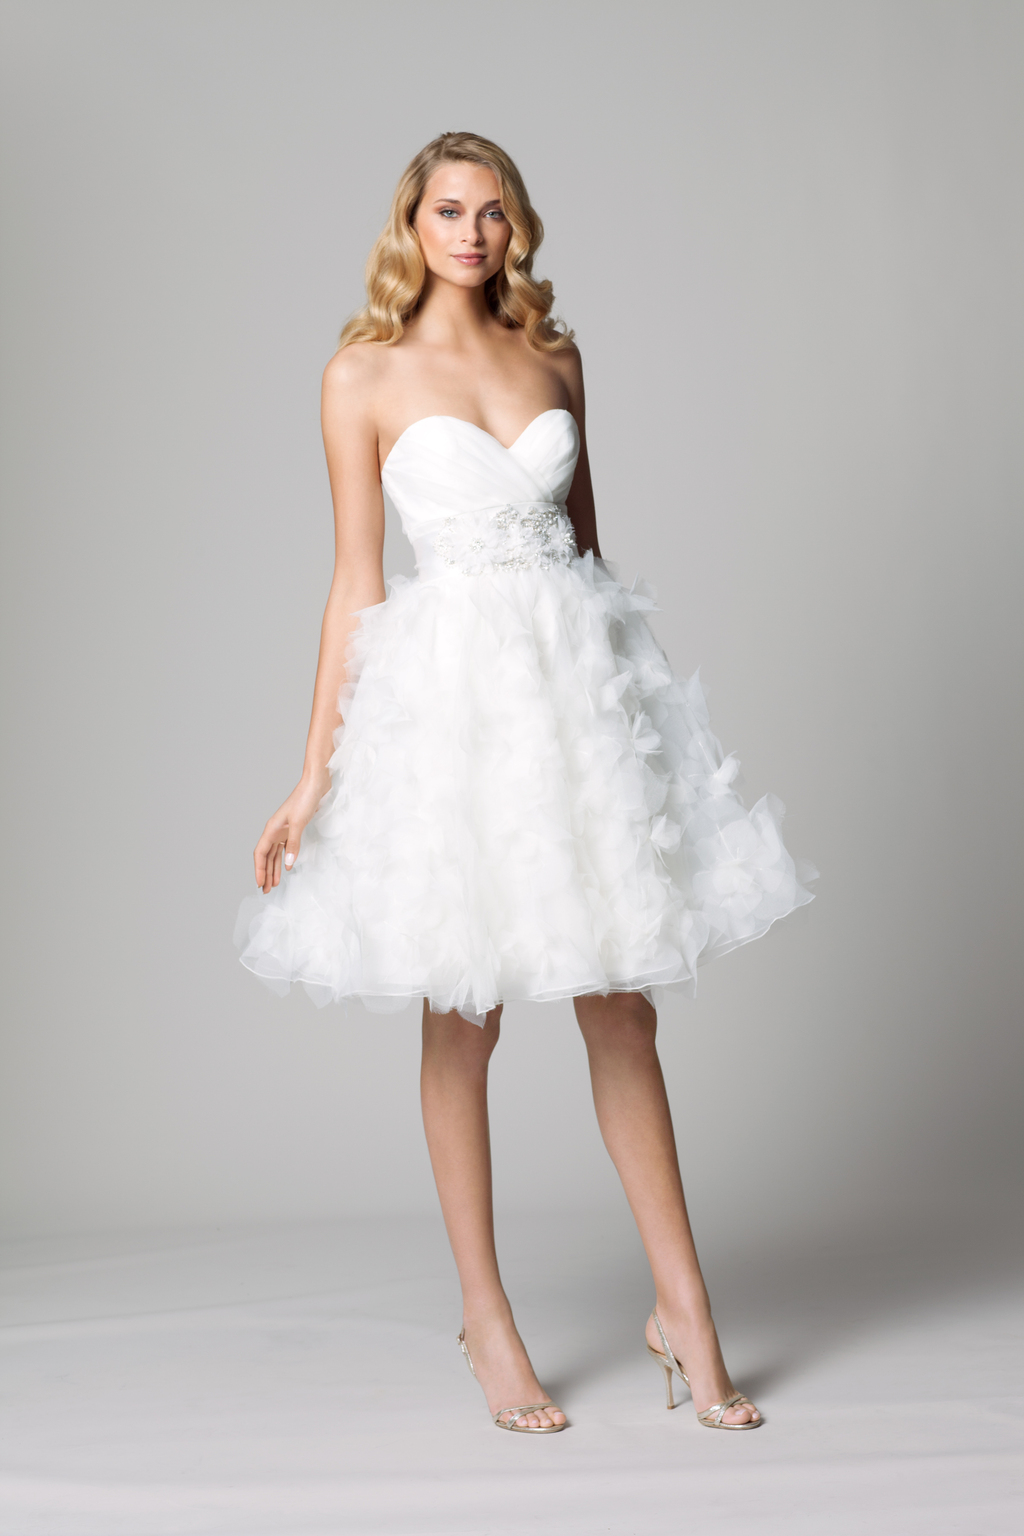 Fall-2012-wedding-dress-wtoo-bridal-gown-by-watters-9-lwd.full